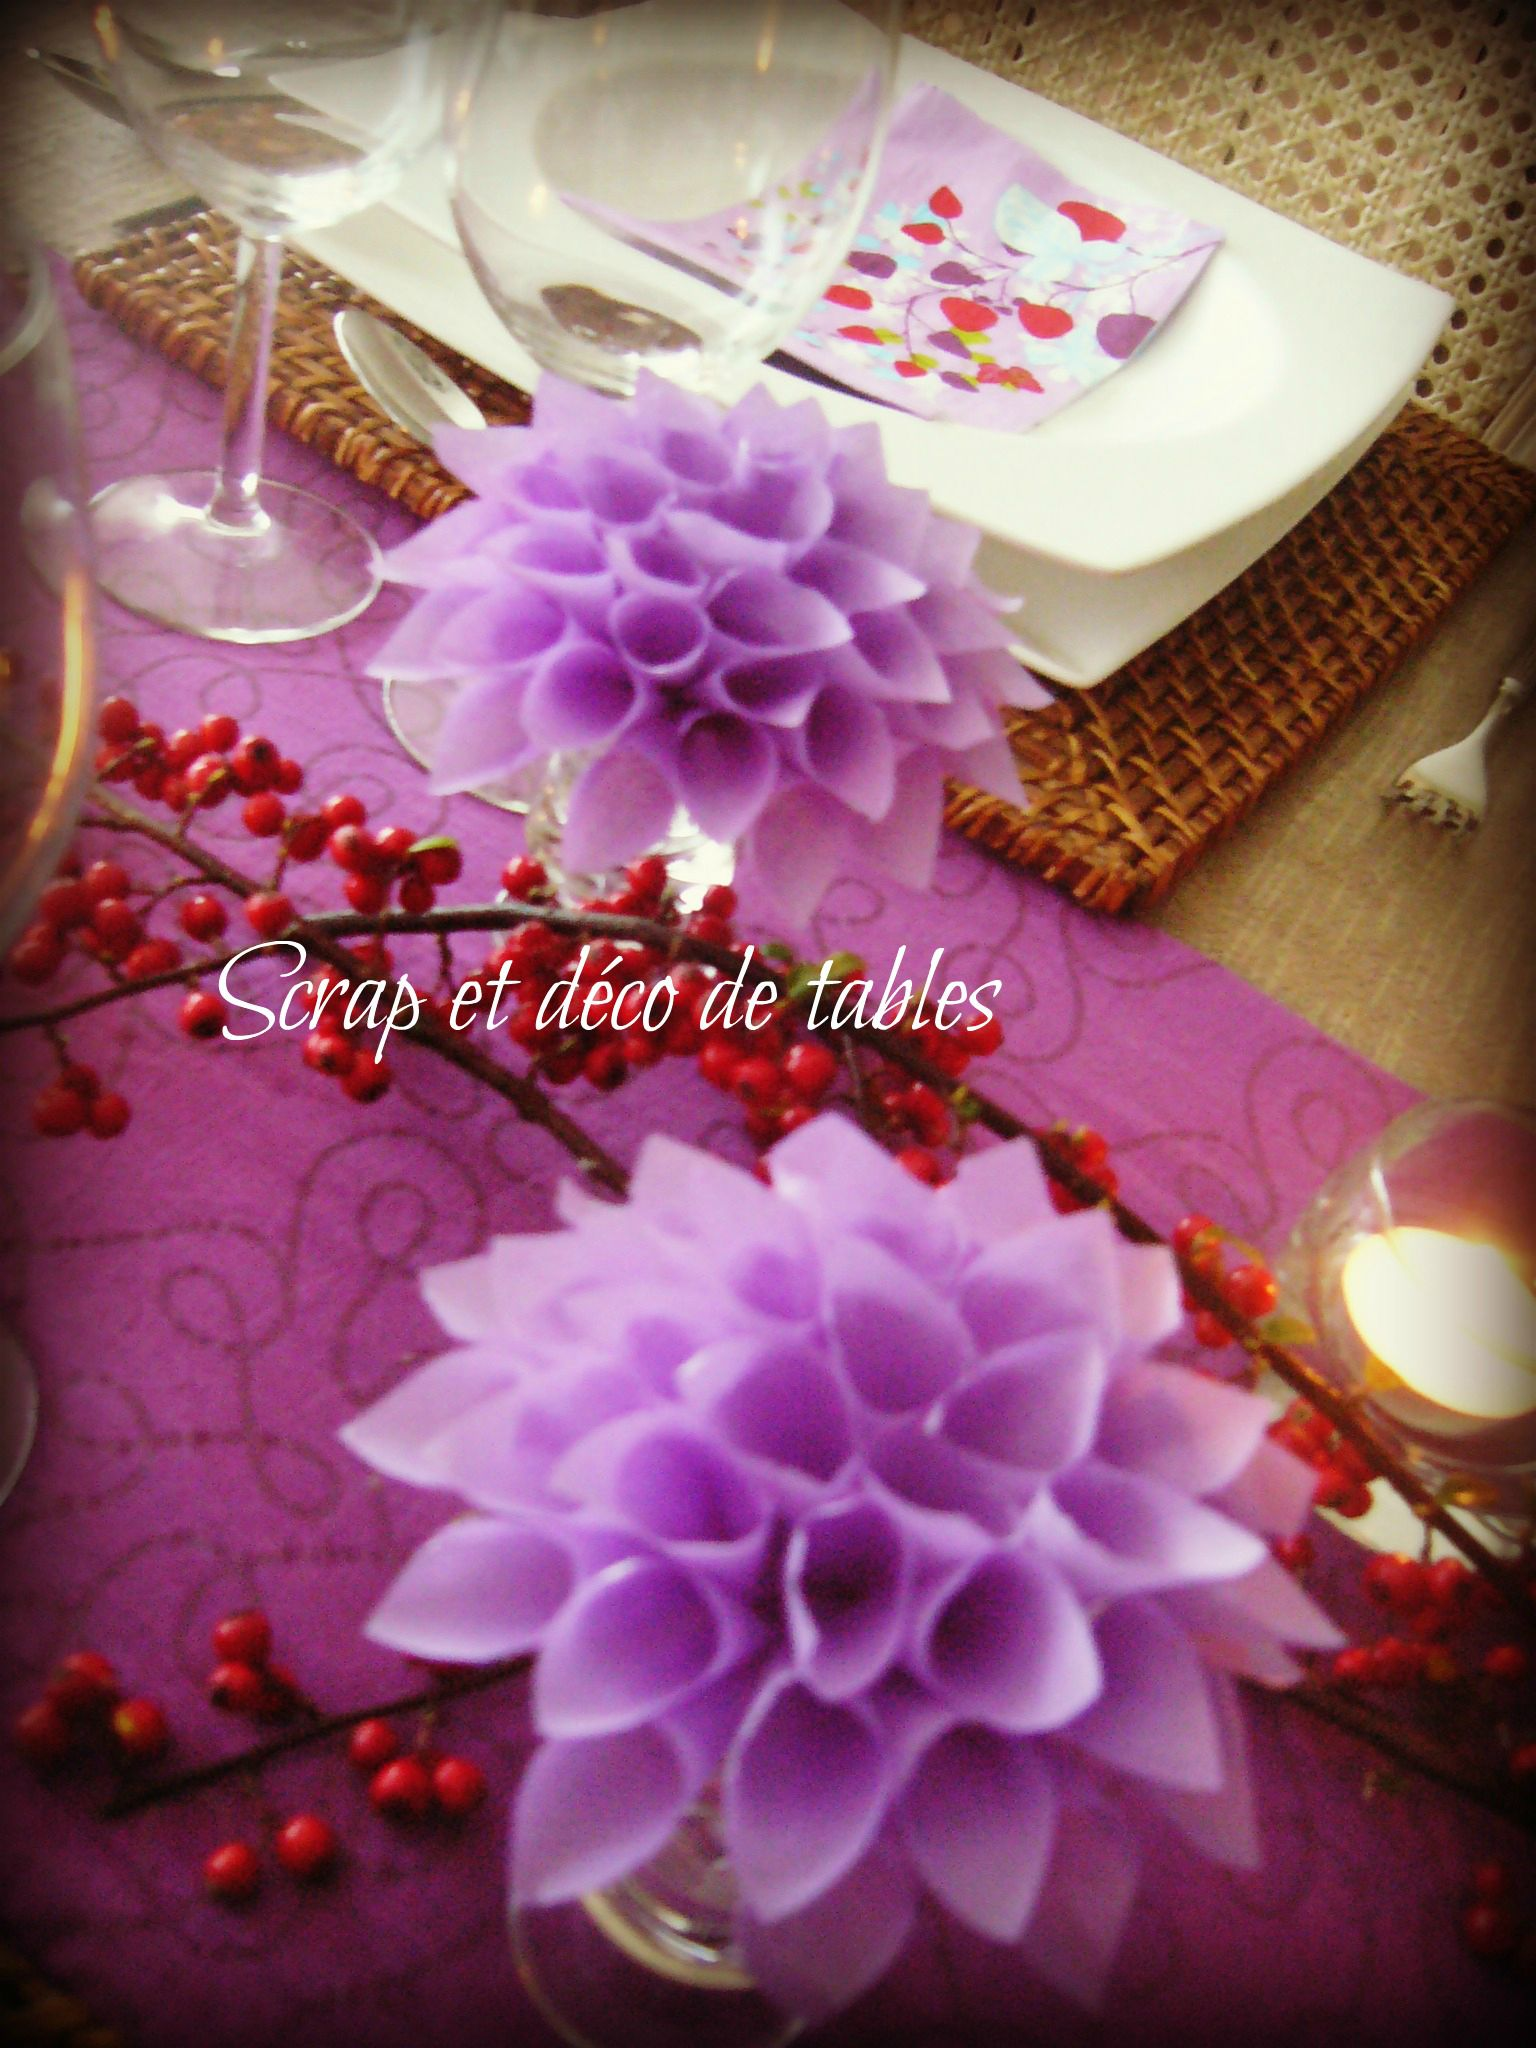 Deco de table dahlia scrap et d co de tables for Deco serviette de table en papier